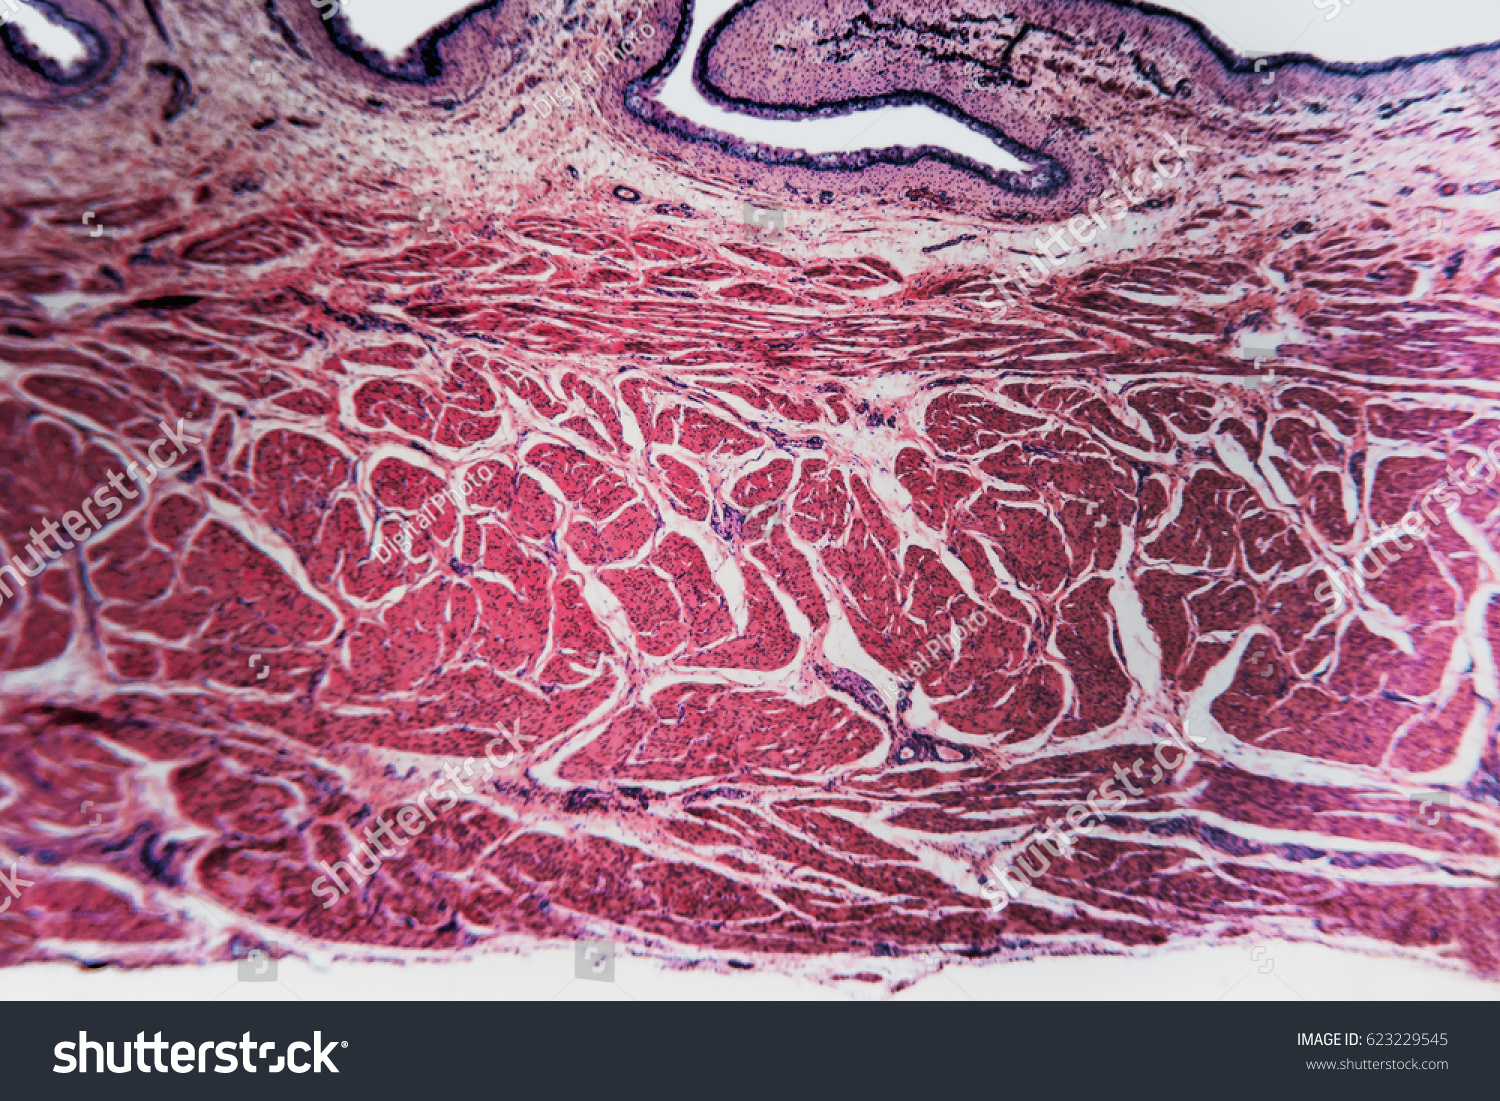 Medical Anatomy Bladder Cat Cells Abstract Stock Photo (Edit Now ...